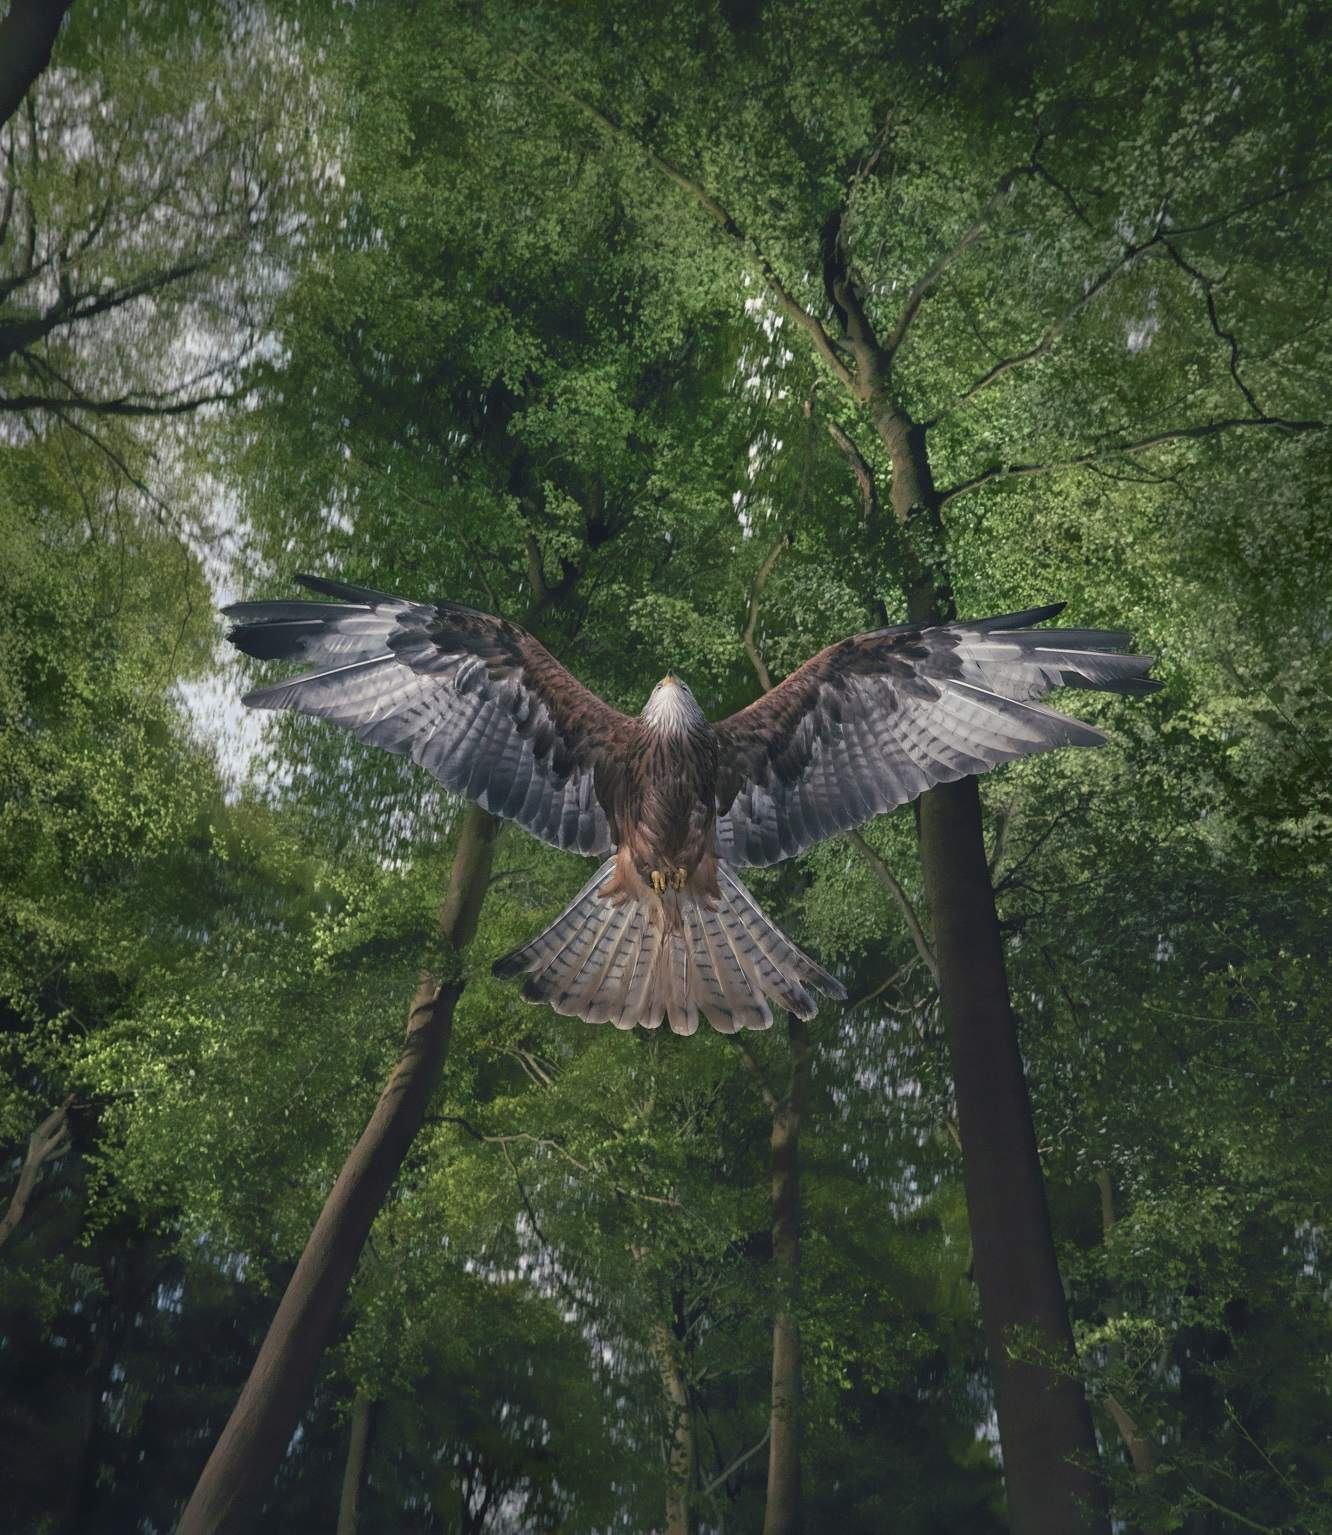 Unfair game: why are Britain's birds of prey being killed?